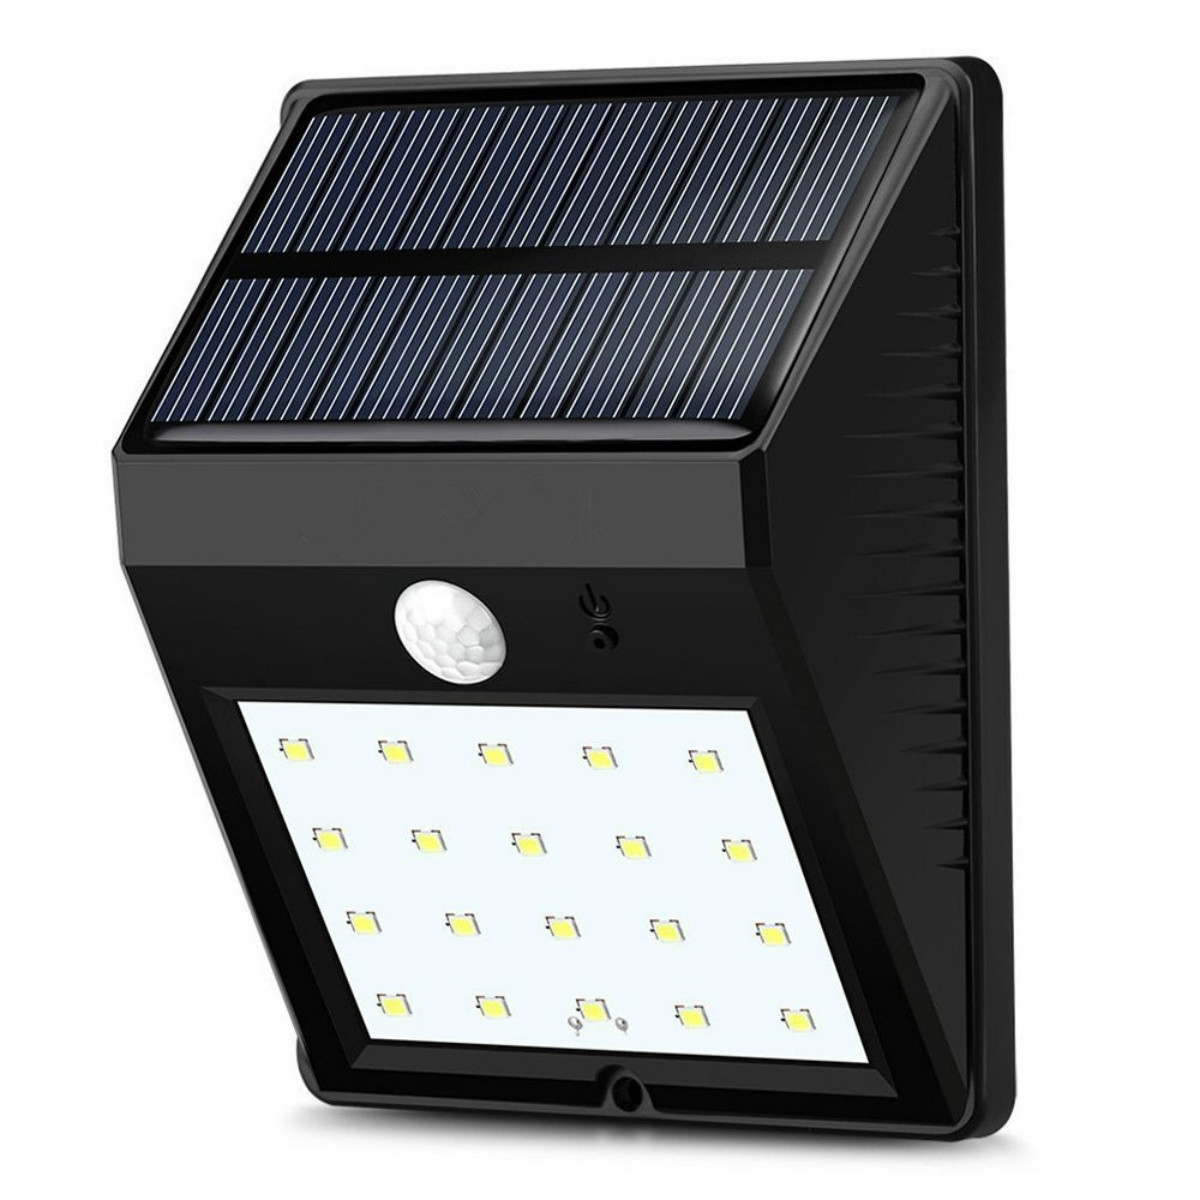 Dcoo Solar Lamp Outdoor 20 LEDs Motion Sensor Garden Decoration Lampada Luz Solar Waterproof Garden Led Solaire Street Light